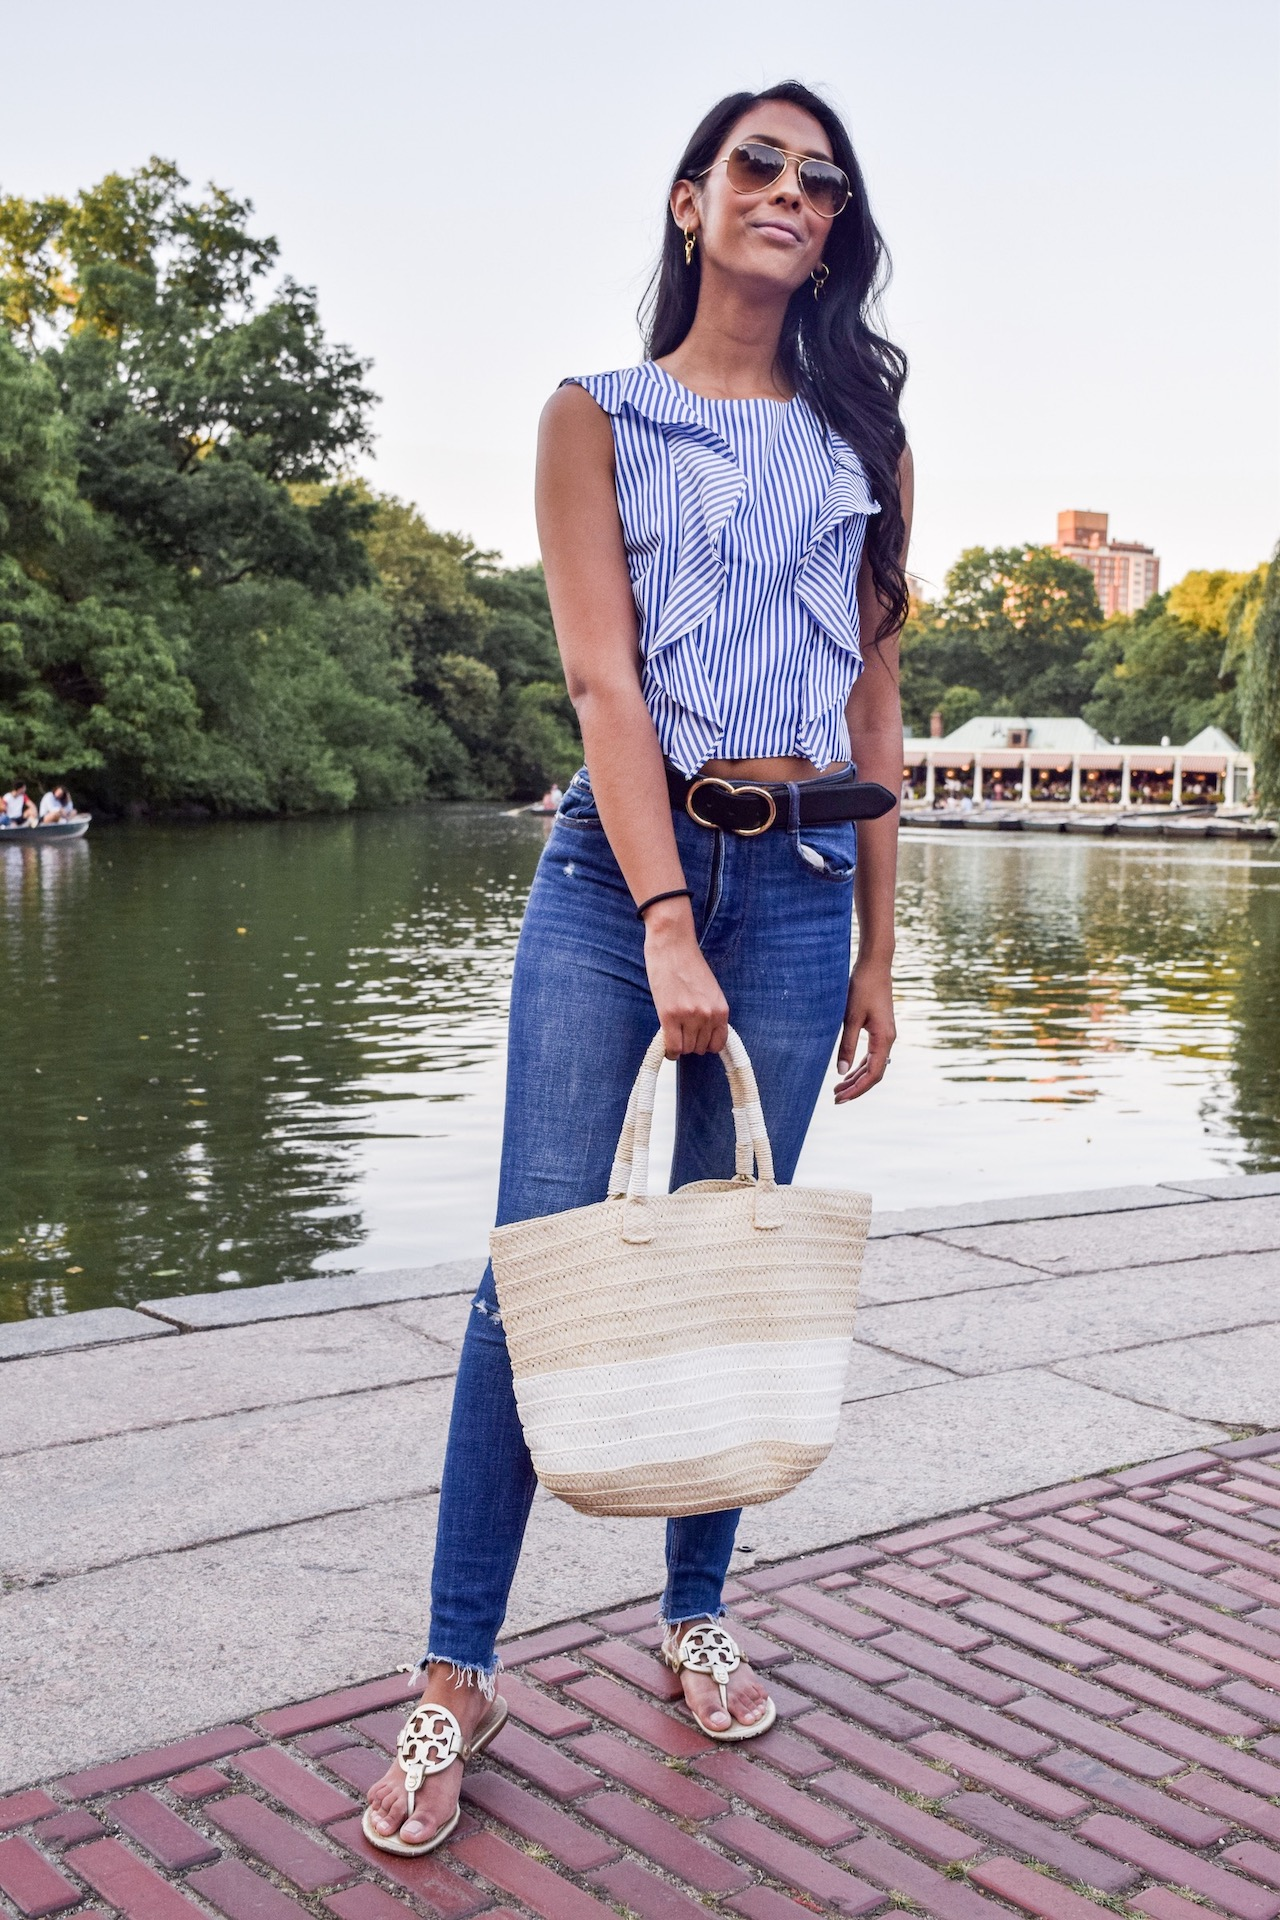 Date night outfit // A Week Of Conscious Trend-Forward Outfits With Sabrina Ramkhelawan From Flaunt Your Fancy on The Good Trade